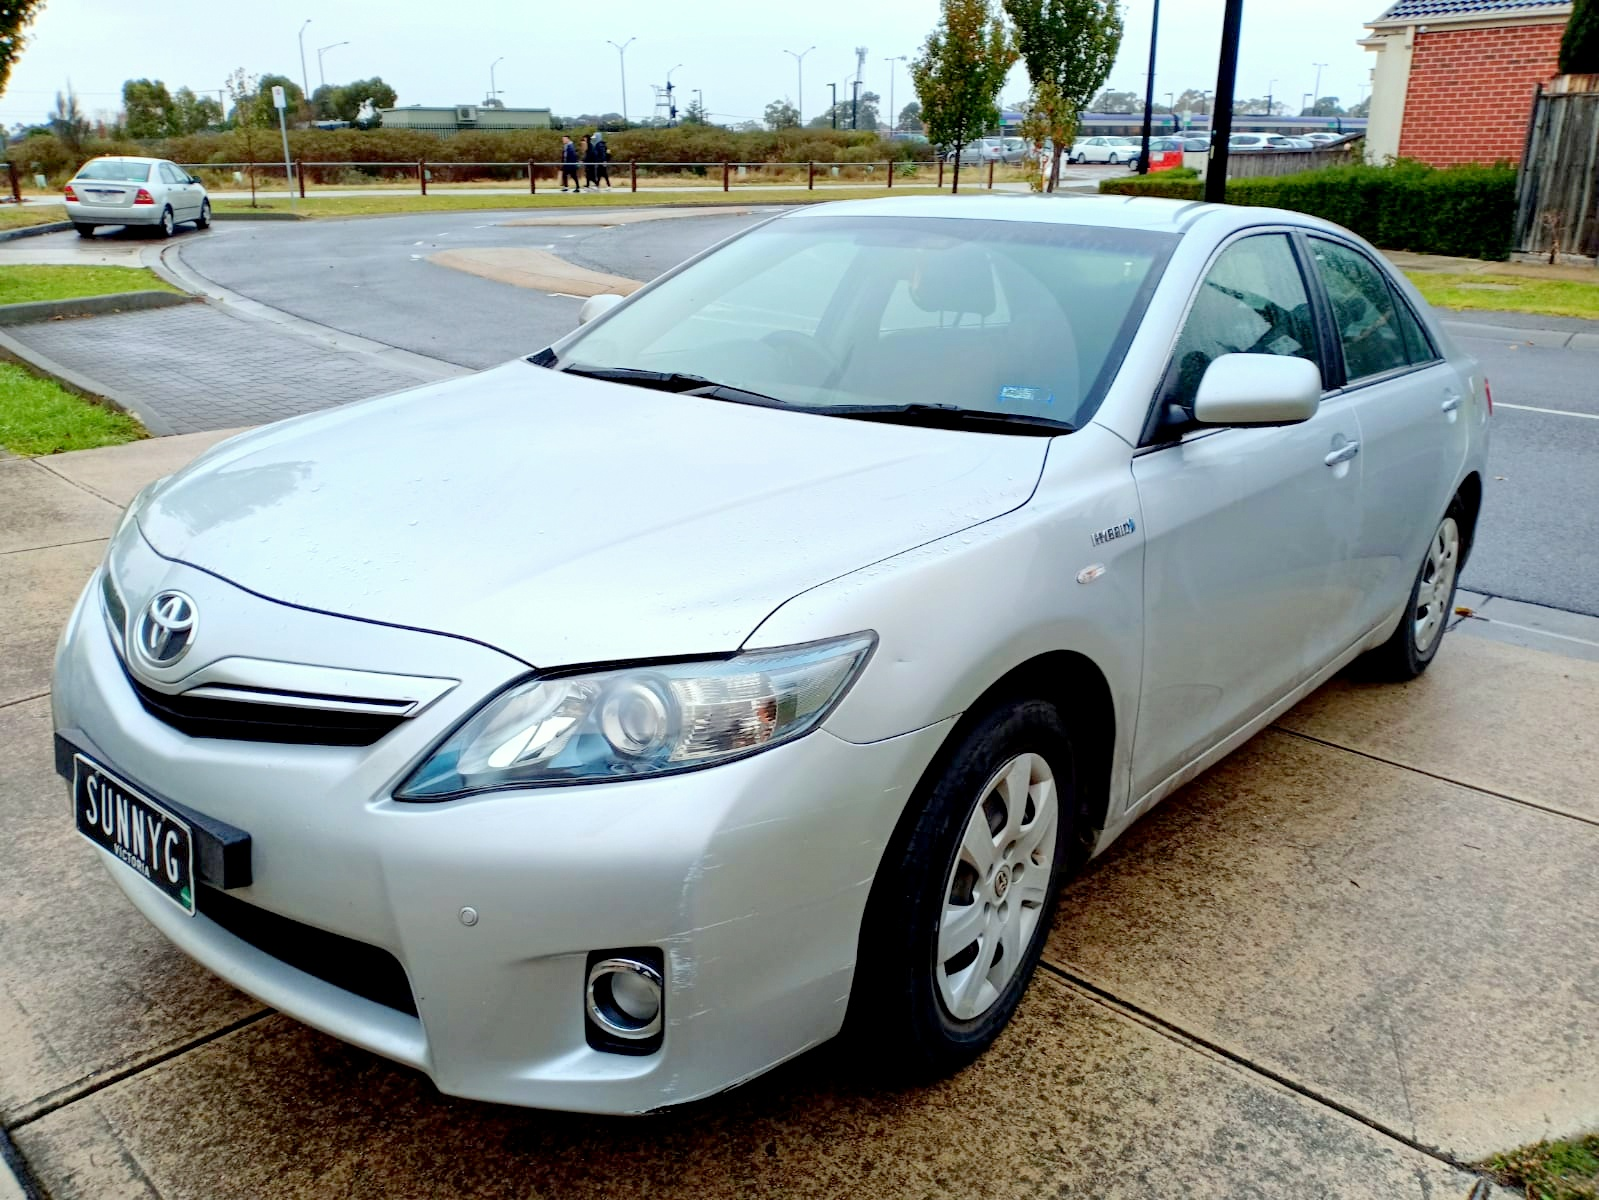 Picture of Sunny's 2010 Toyota Camry Hybrid